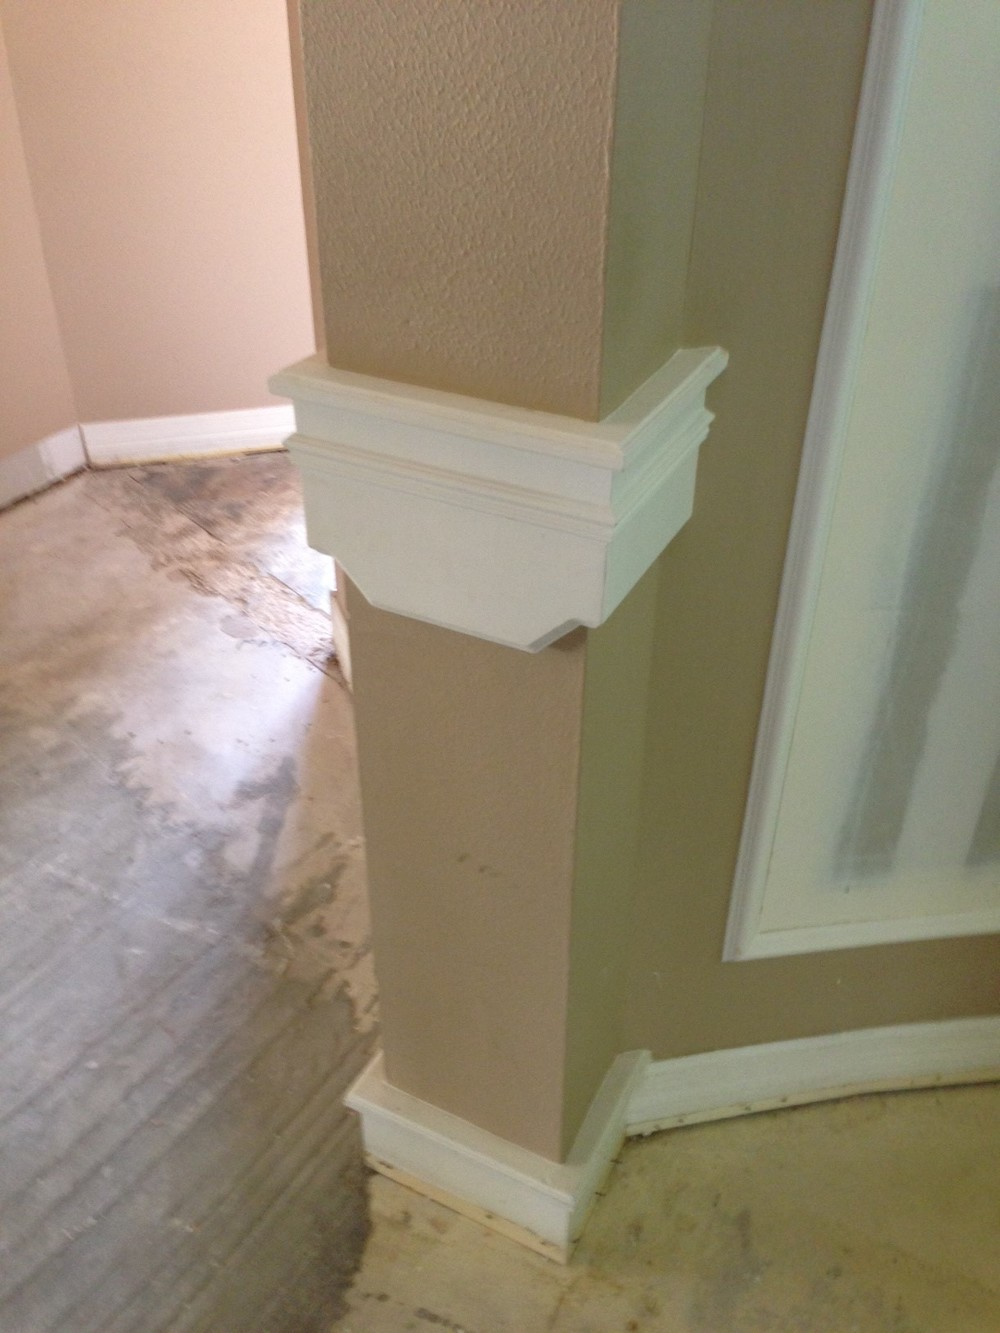 Mouldings can be a beautiful thing. However, many times they're not. Sometimes they're bulky or puny, cheaply done, outside of the contextual style of the house, and really just don't make sense.